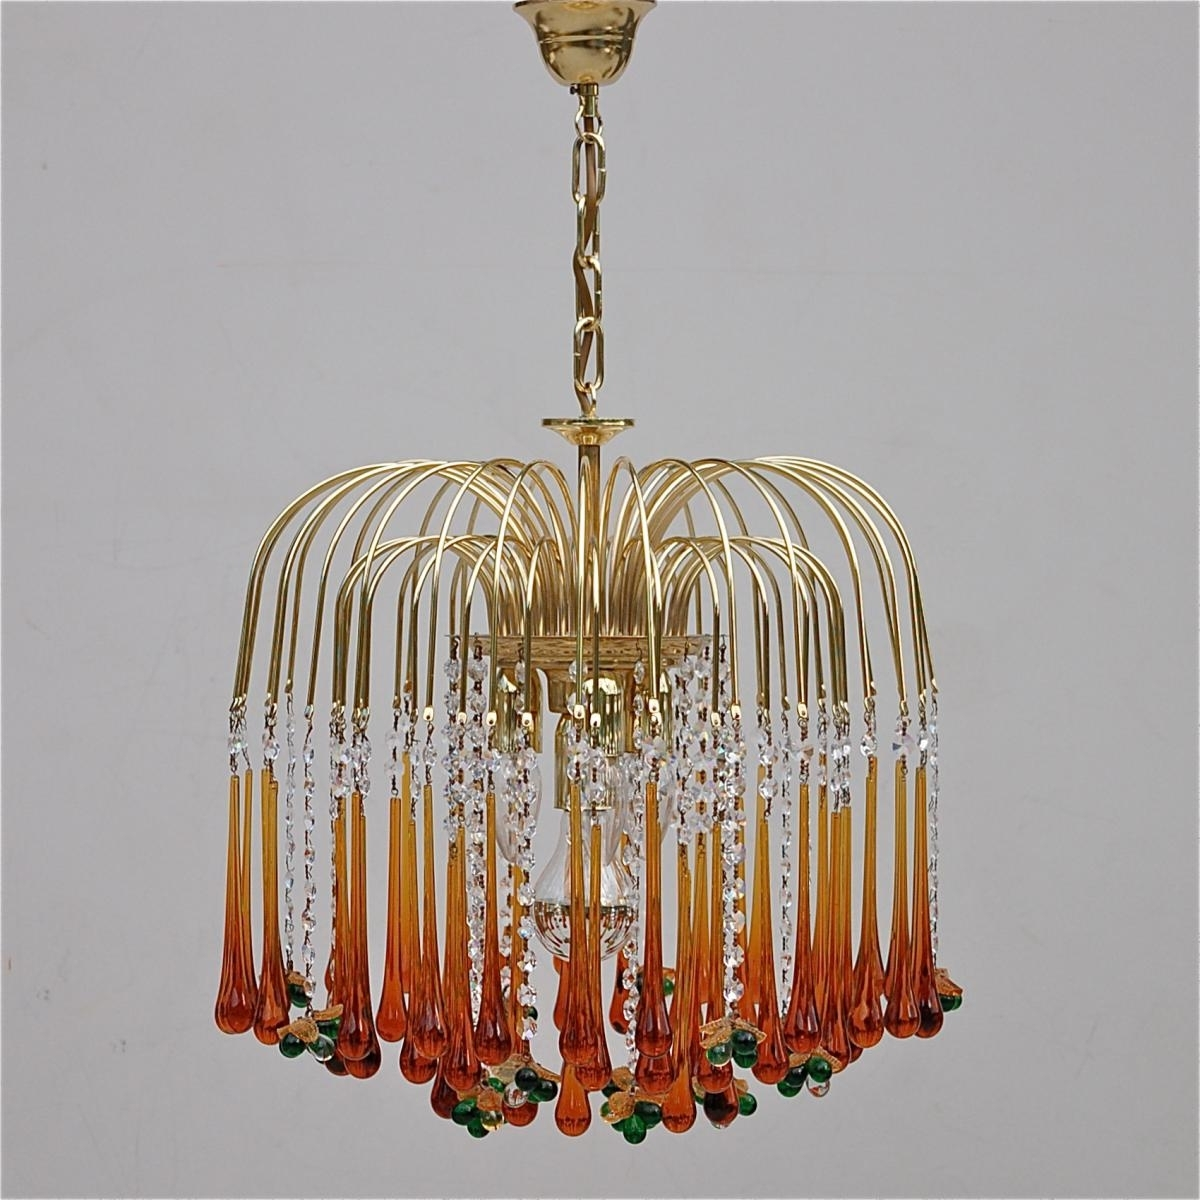 Vintage Teardrop And Fruit Murano Glass Chandelier For Sale At Pamono Pertaining To Well Known Glass Chandelier (View 3 of 15)